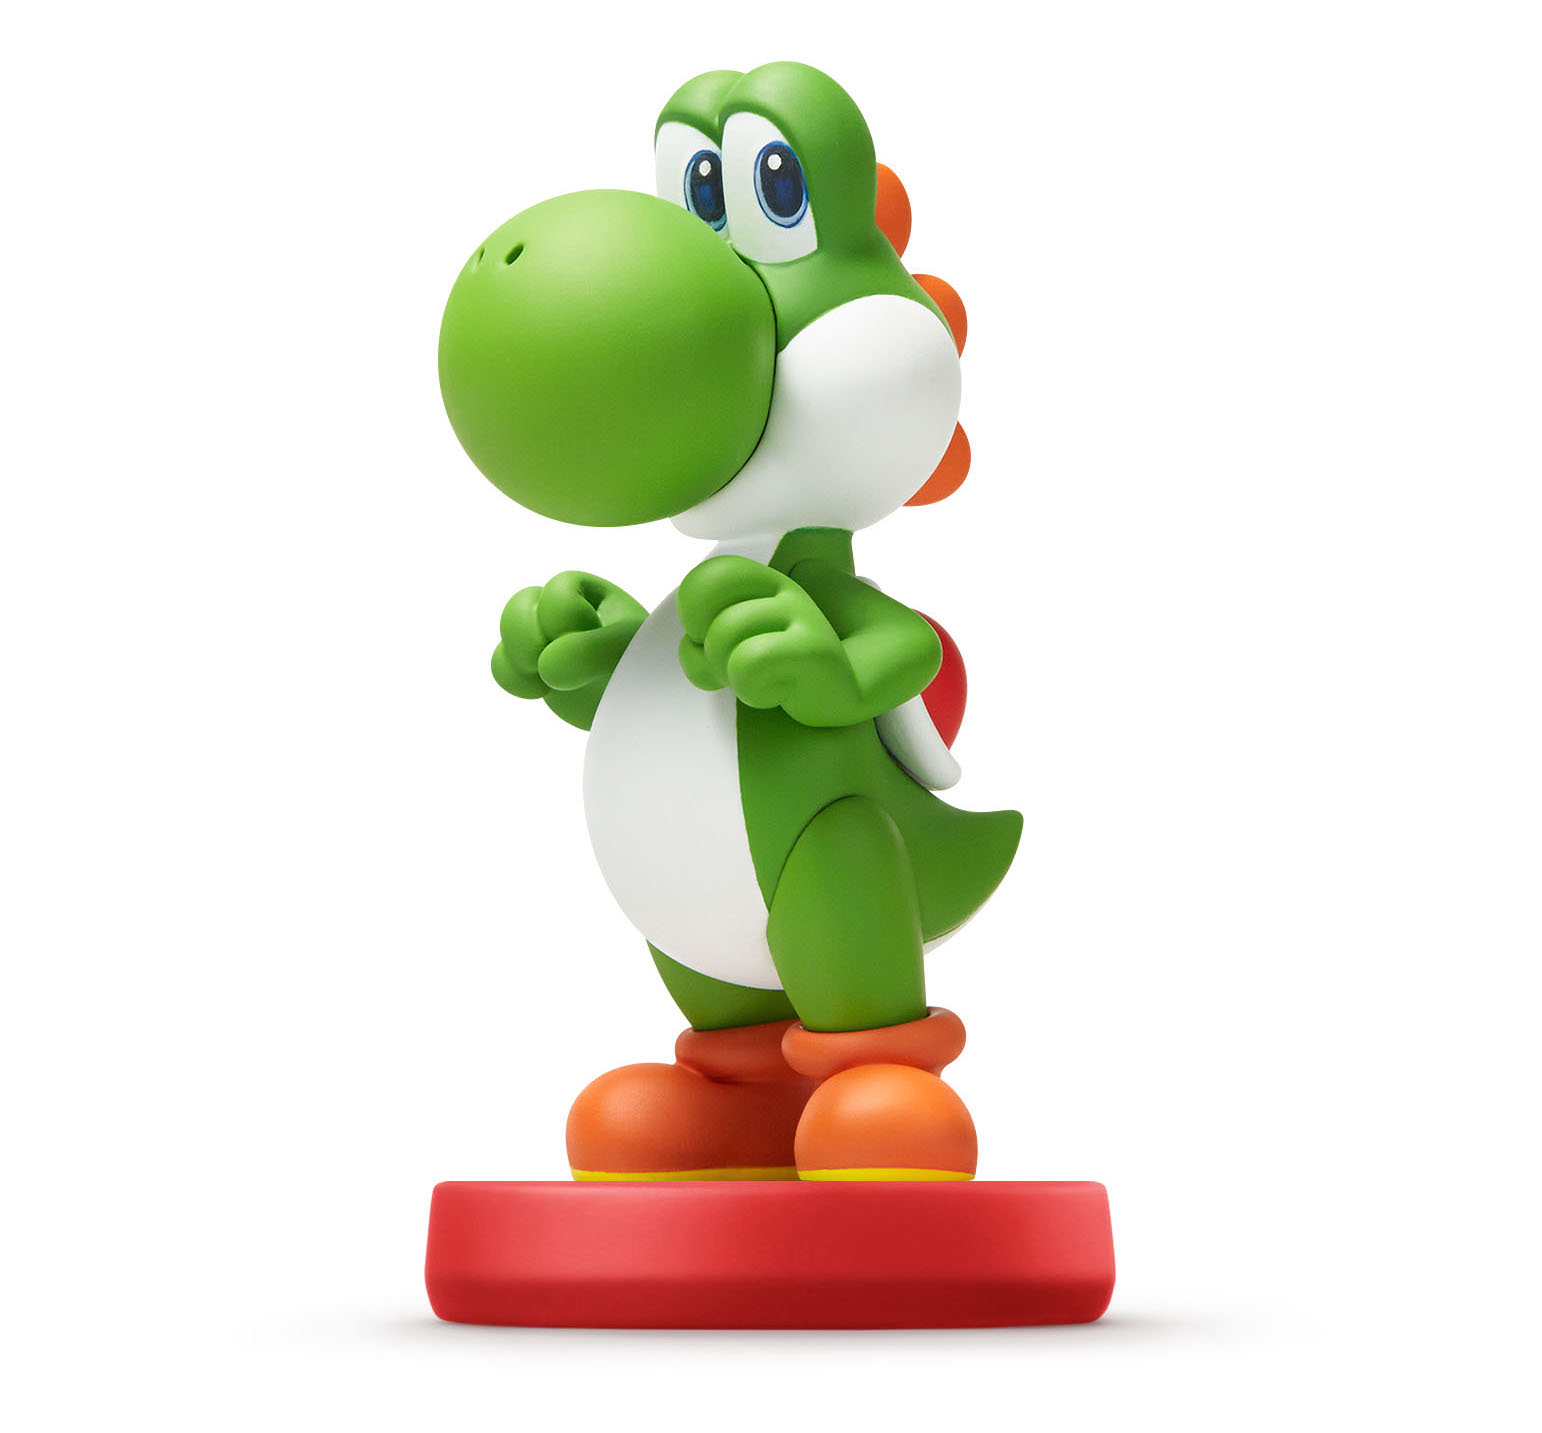 """Yoshi's Wooly World"" Supports Regular Amiibos - Play as a Mario-Skinned Yoshi and More"